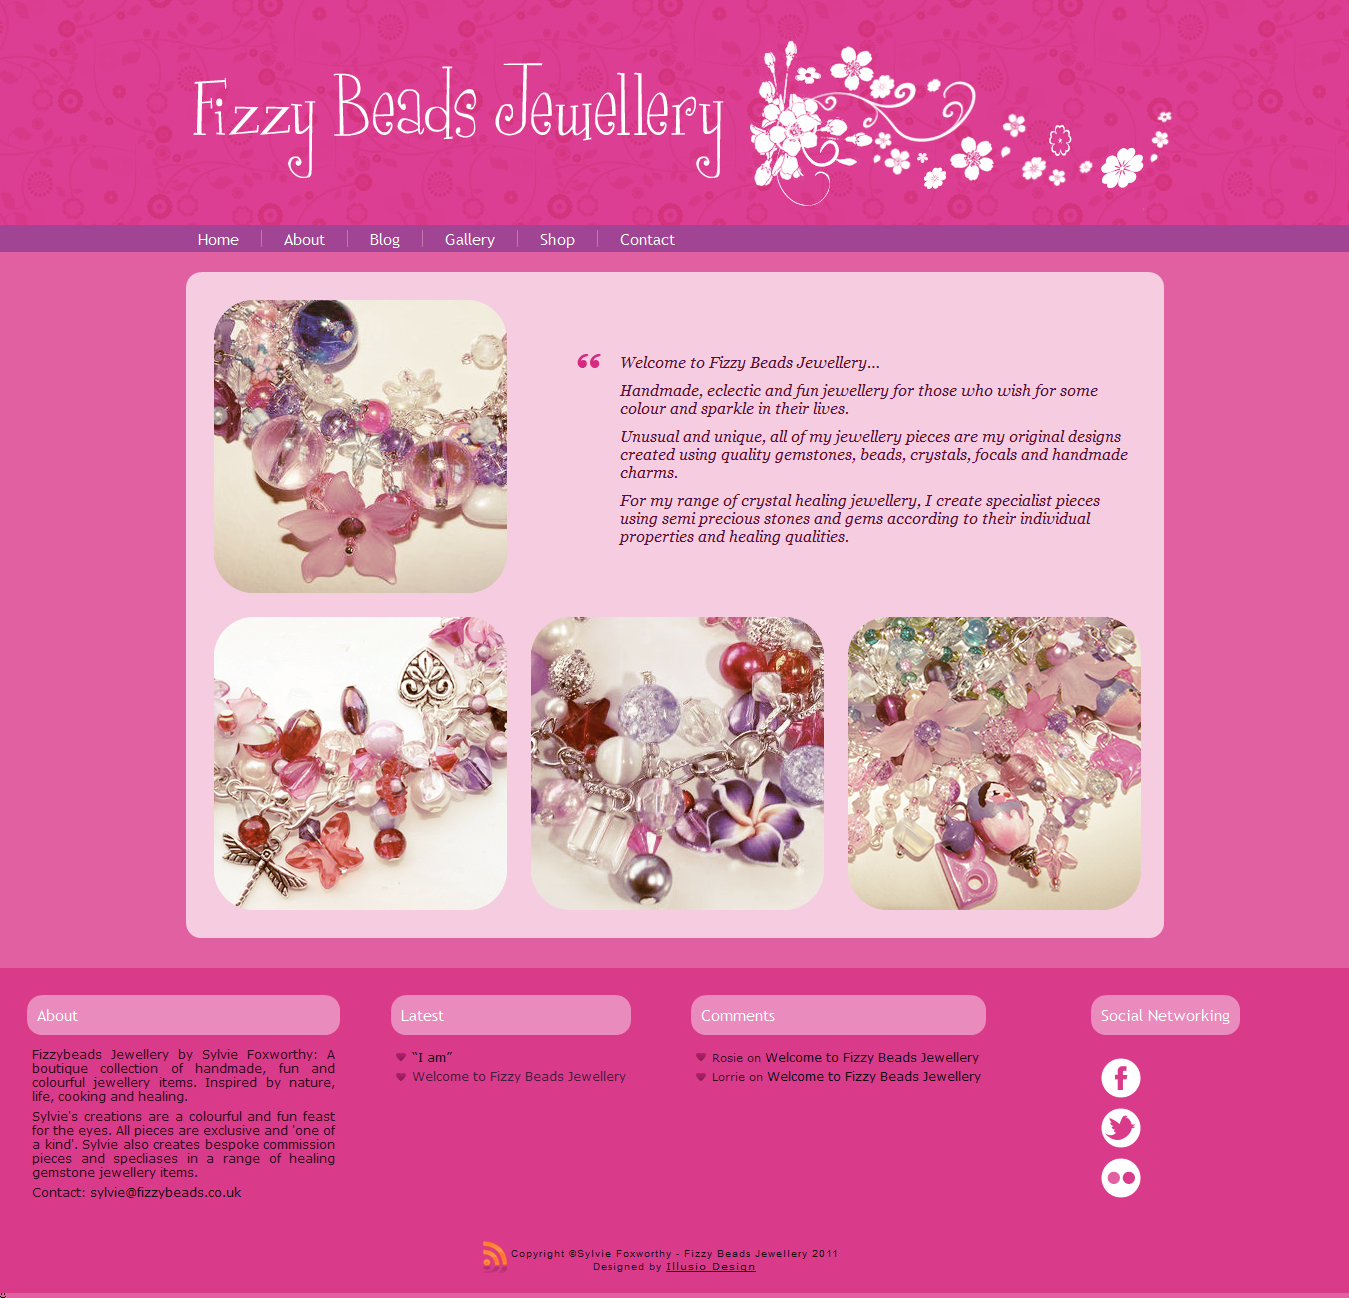 Fizzy Beads Jewellery